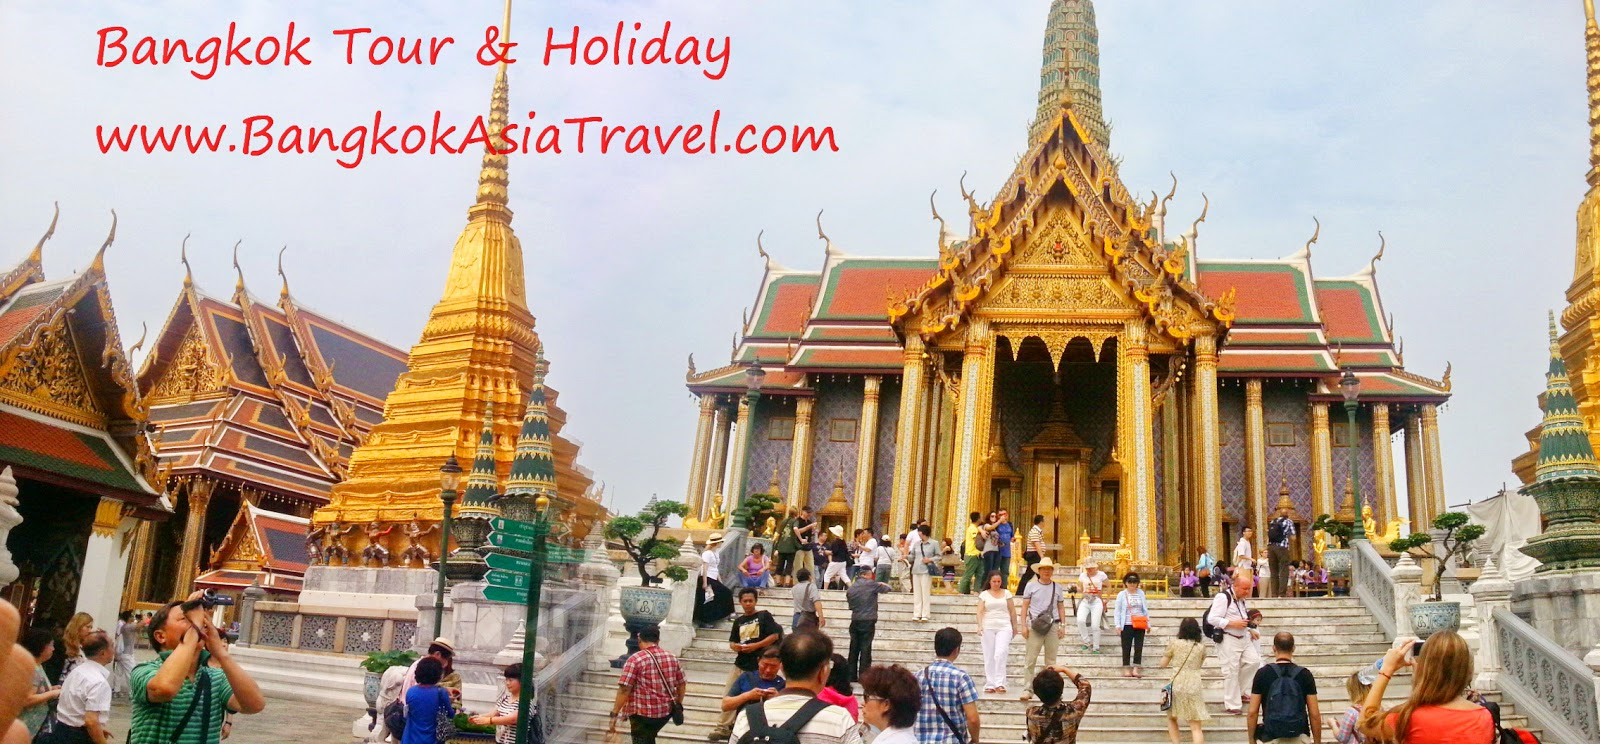 Cruise Tours & Holiday in Thailand